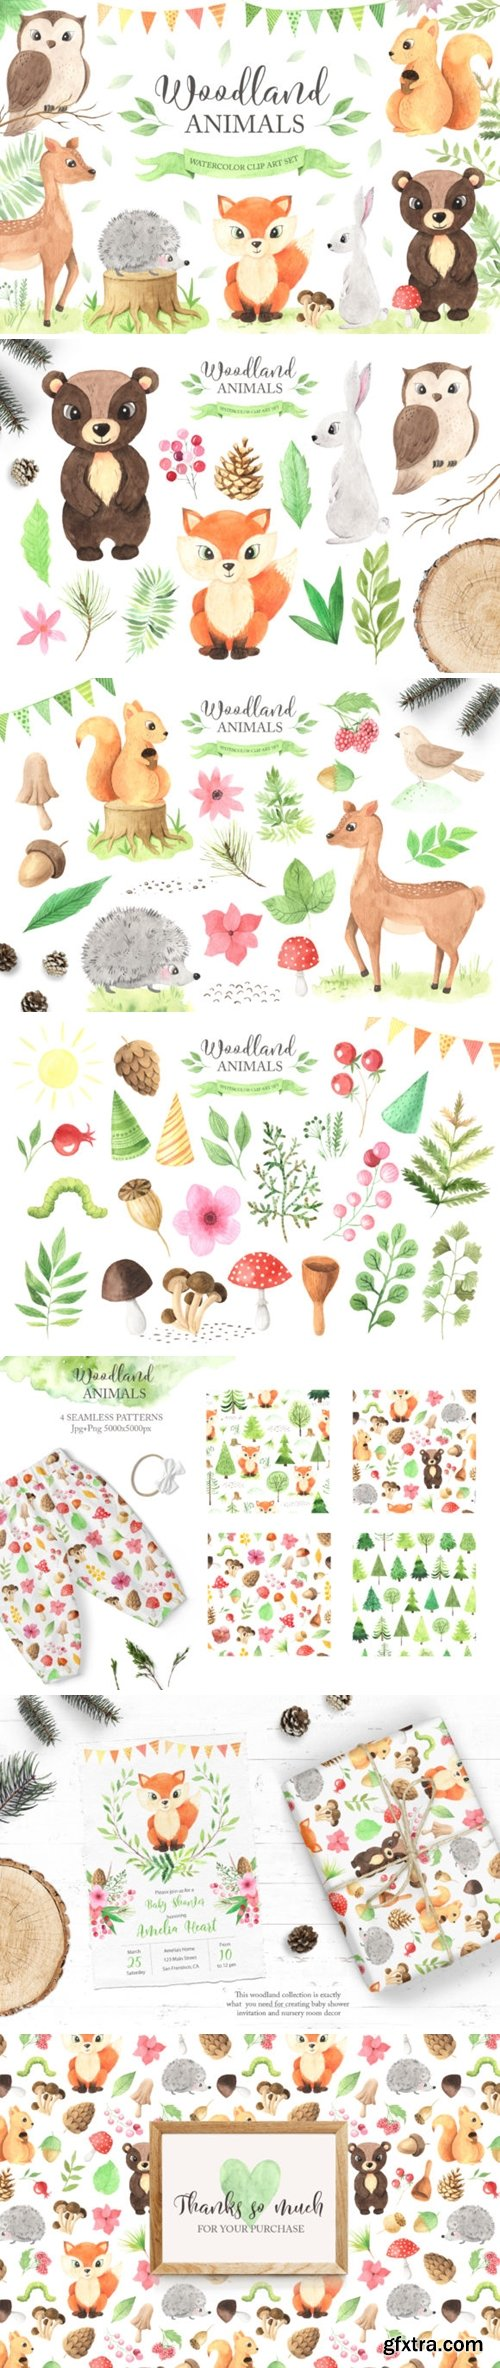 Watercolor Woodland Animals Set 3664097